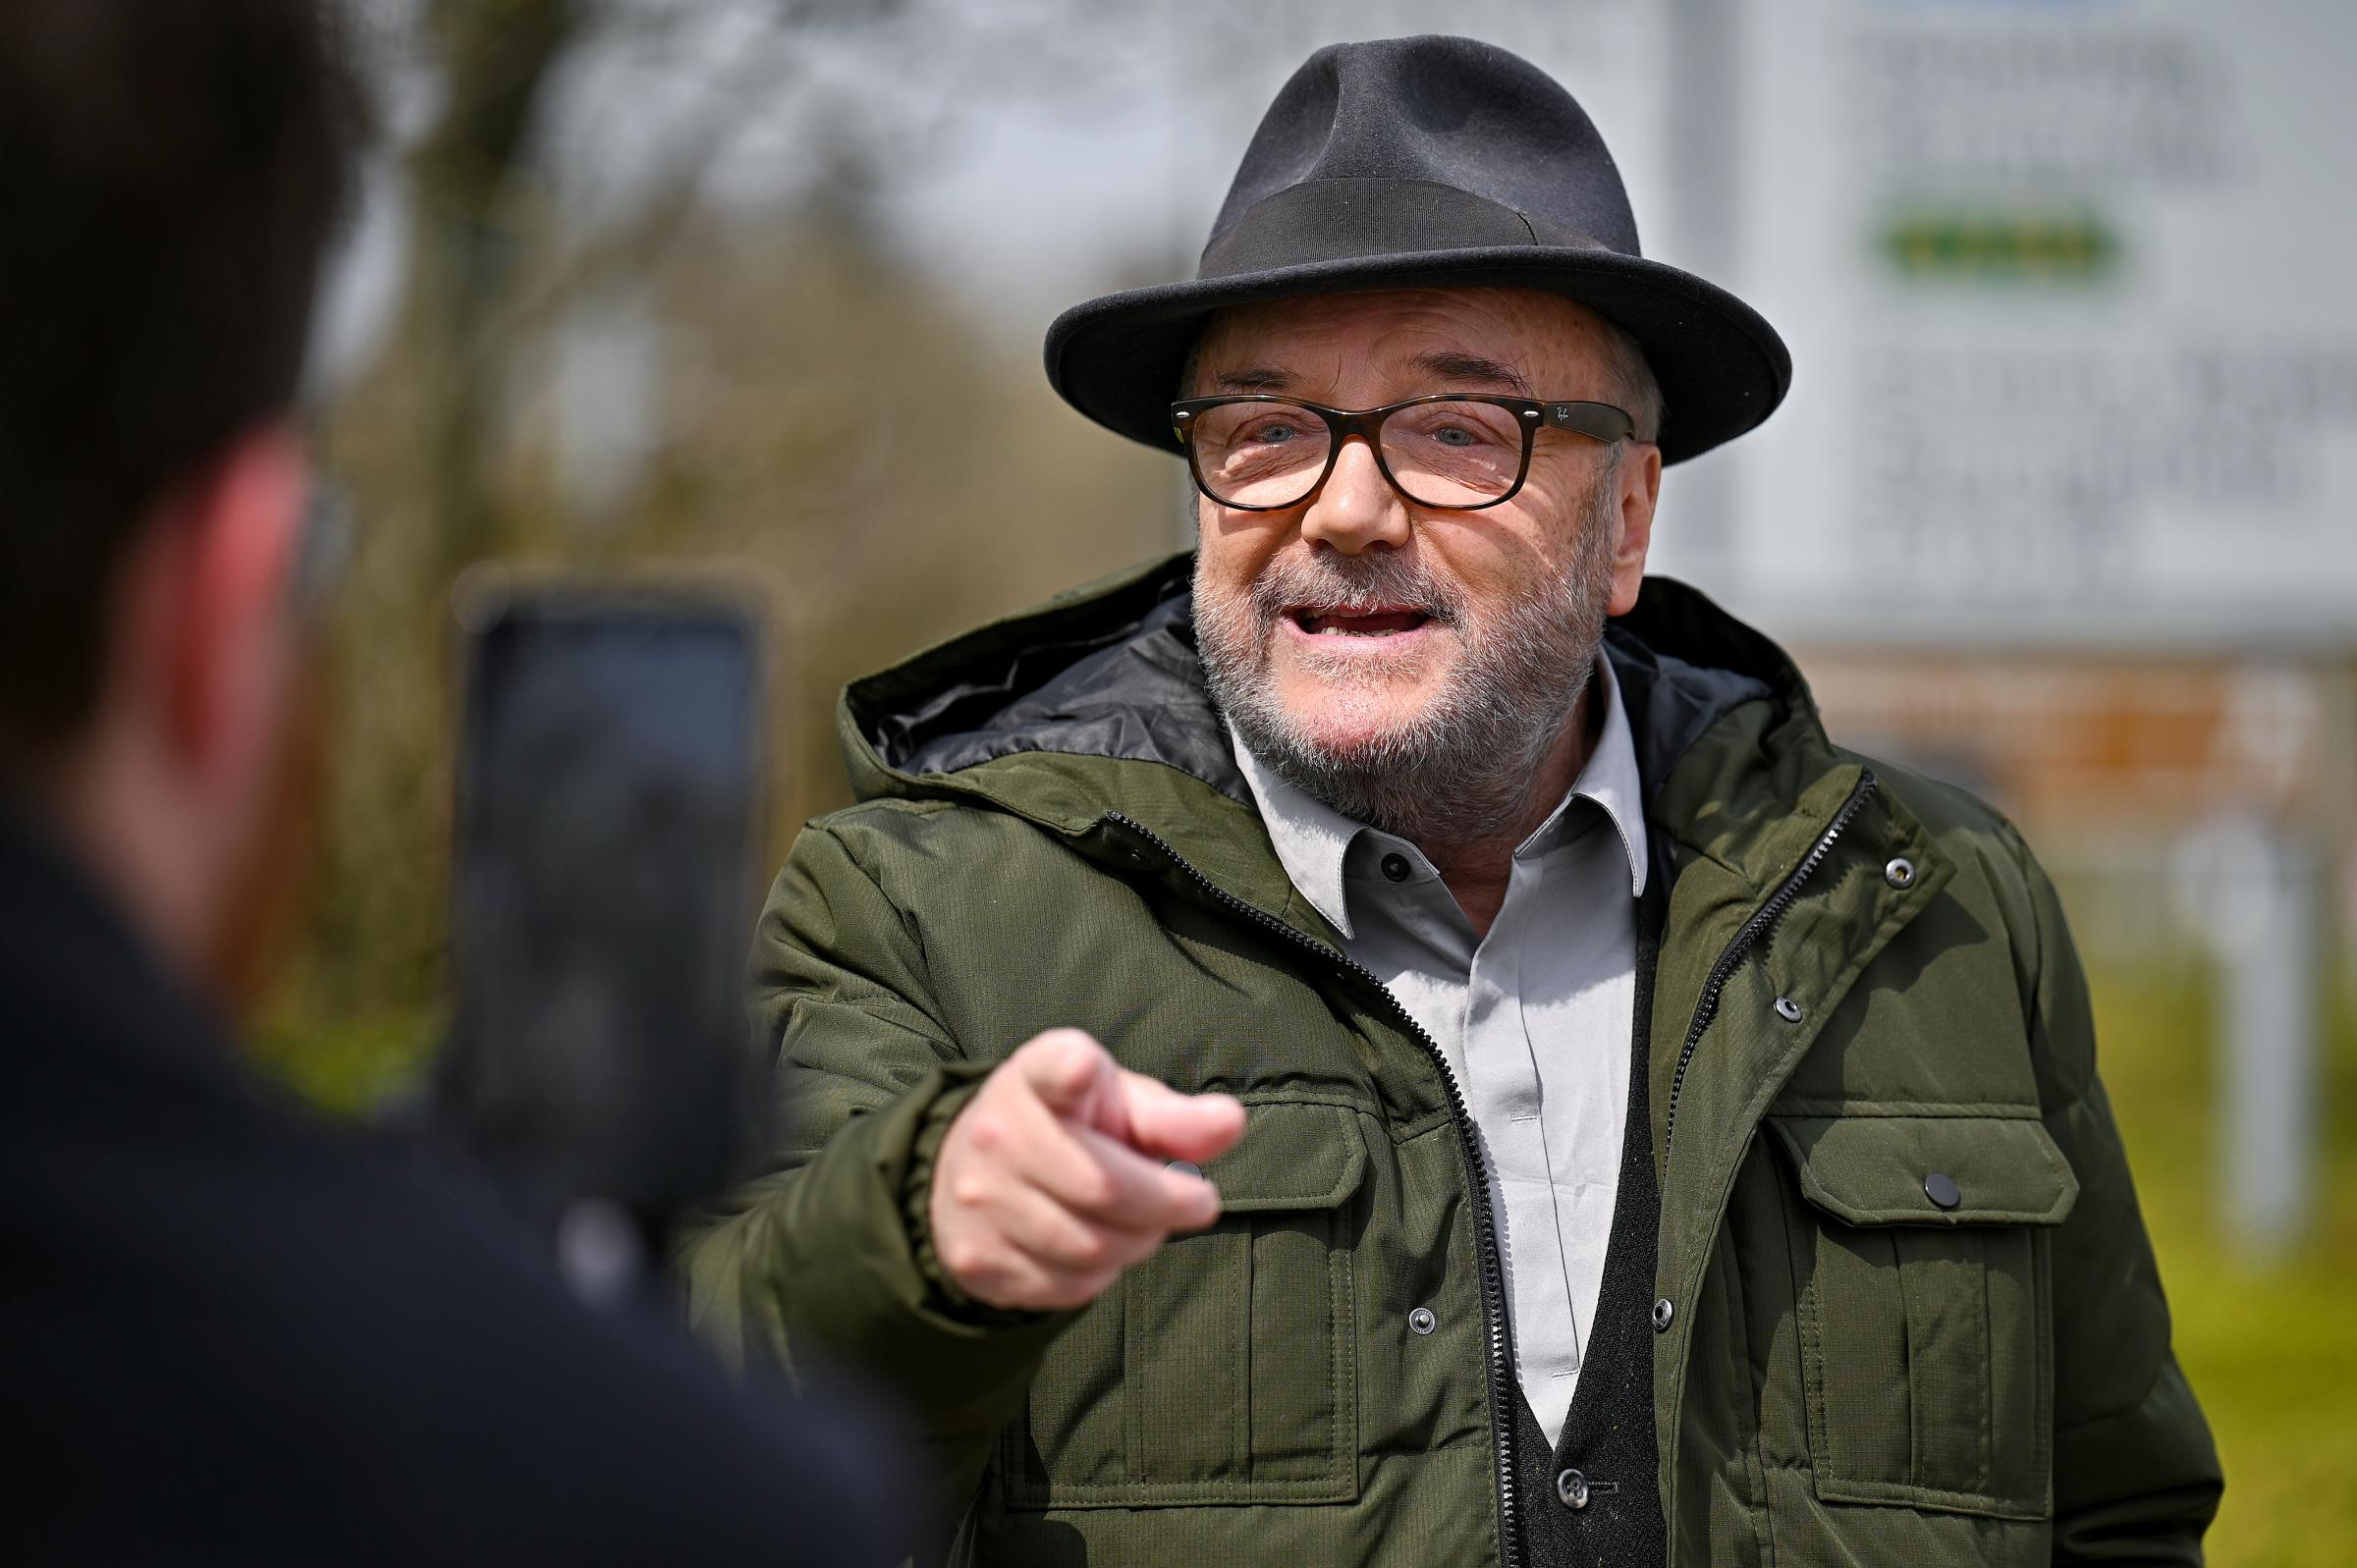 George Galloway's immigration comments reveal just how far he's fallen